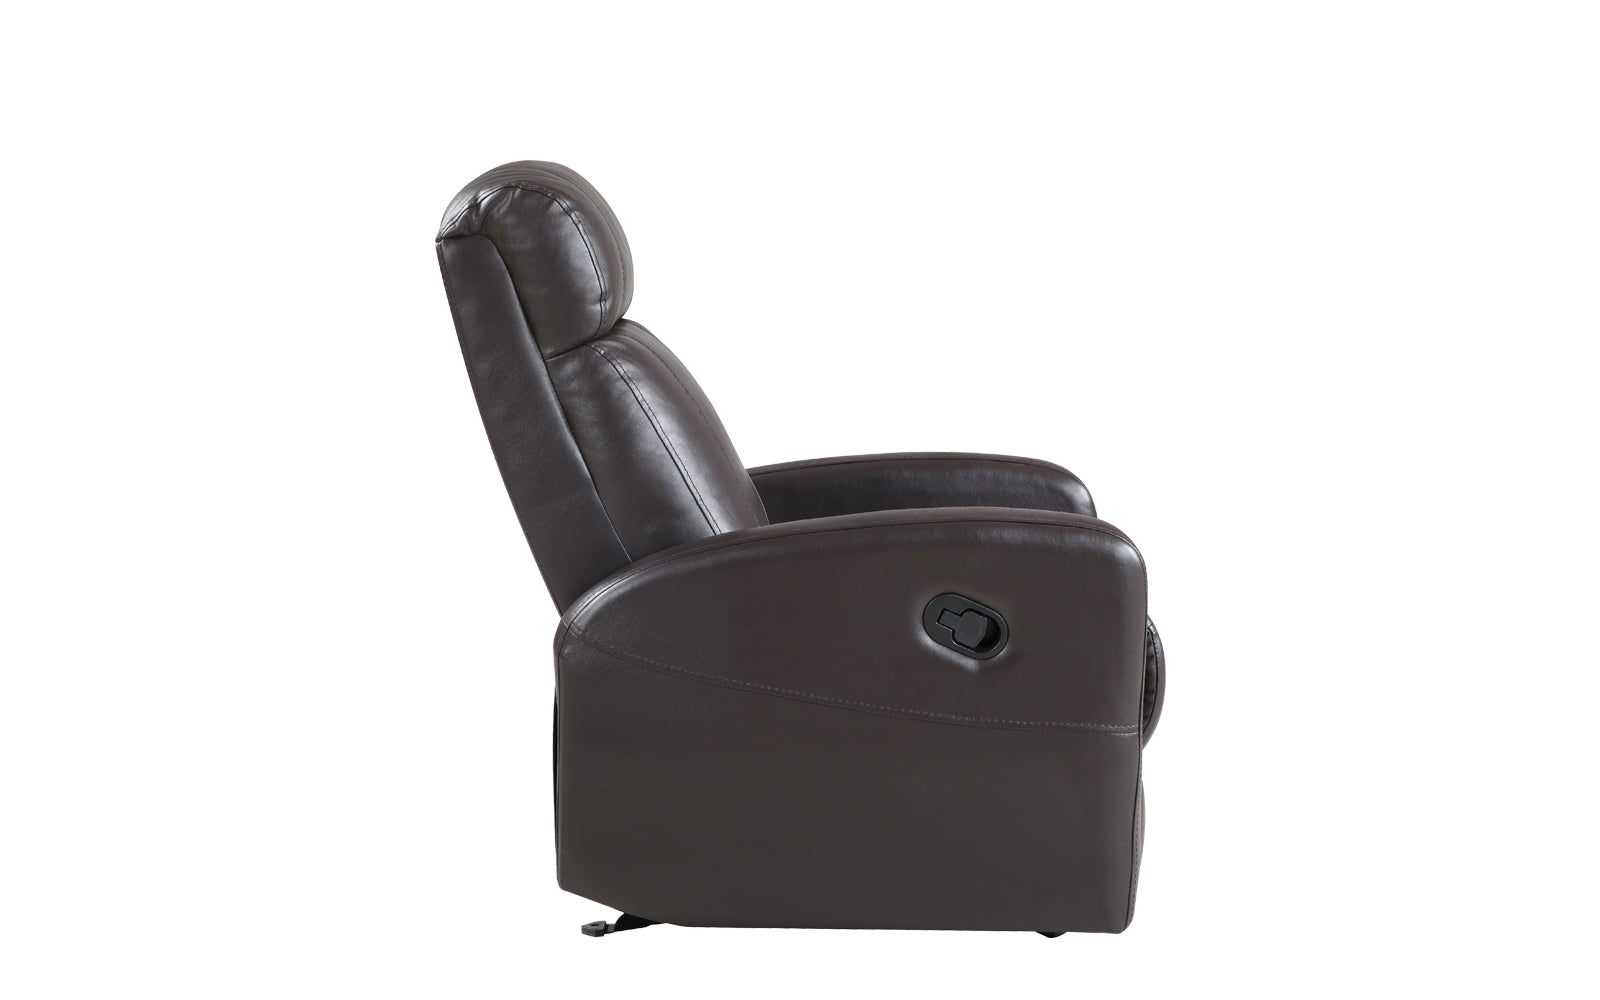 Groovy Sabin Modern Faux Leather Recliner Sofamania Com Onthecornerstone Fun Painted Chair Ideas Images Onthecornerstoneorg